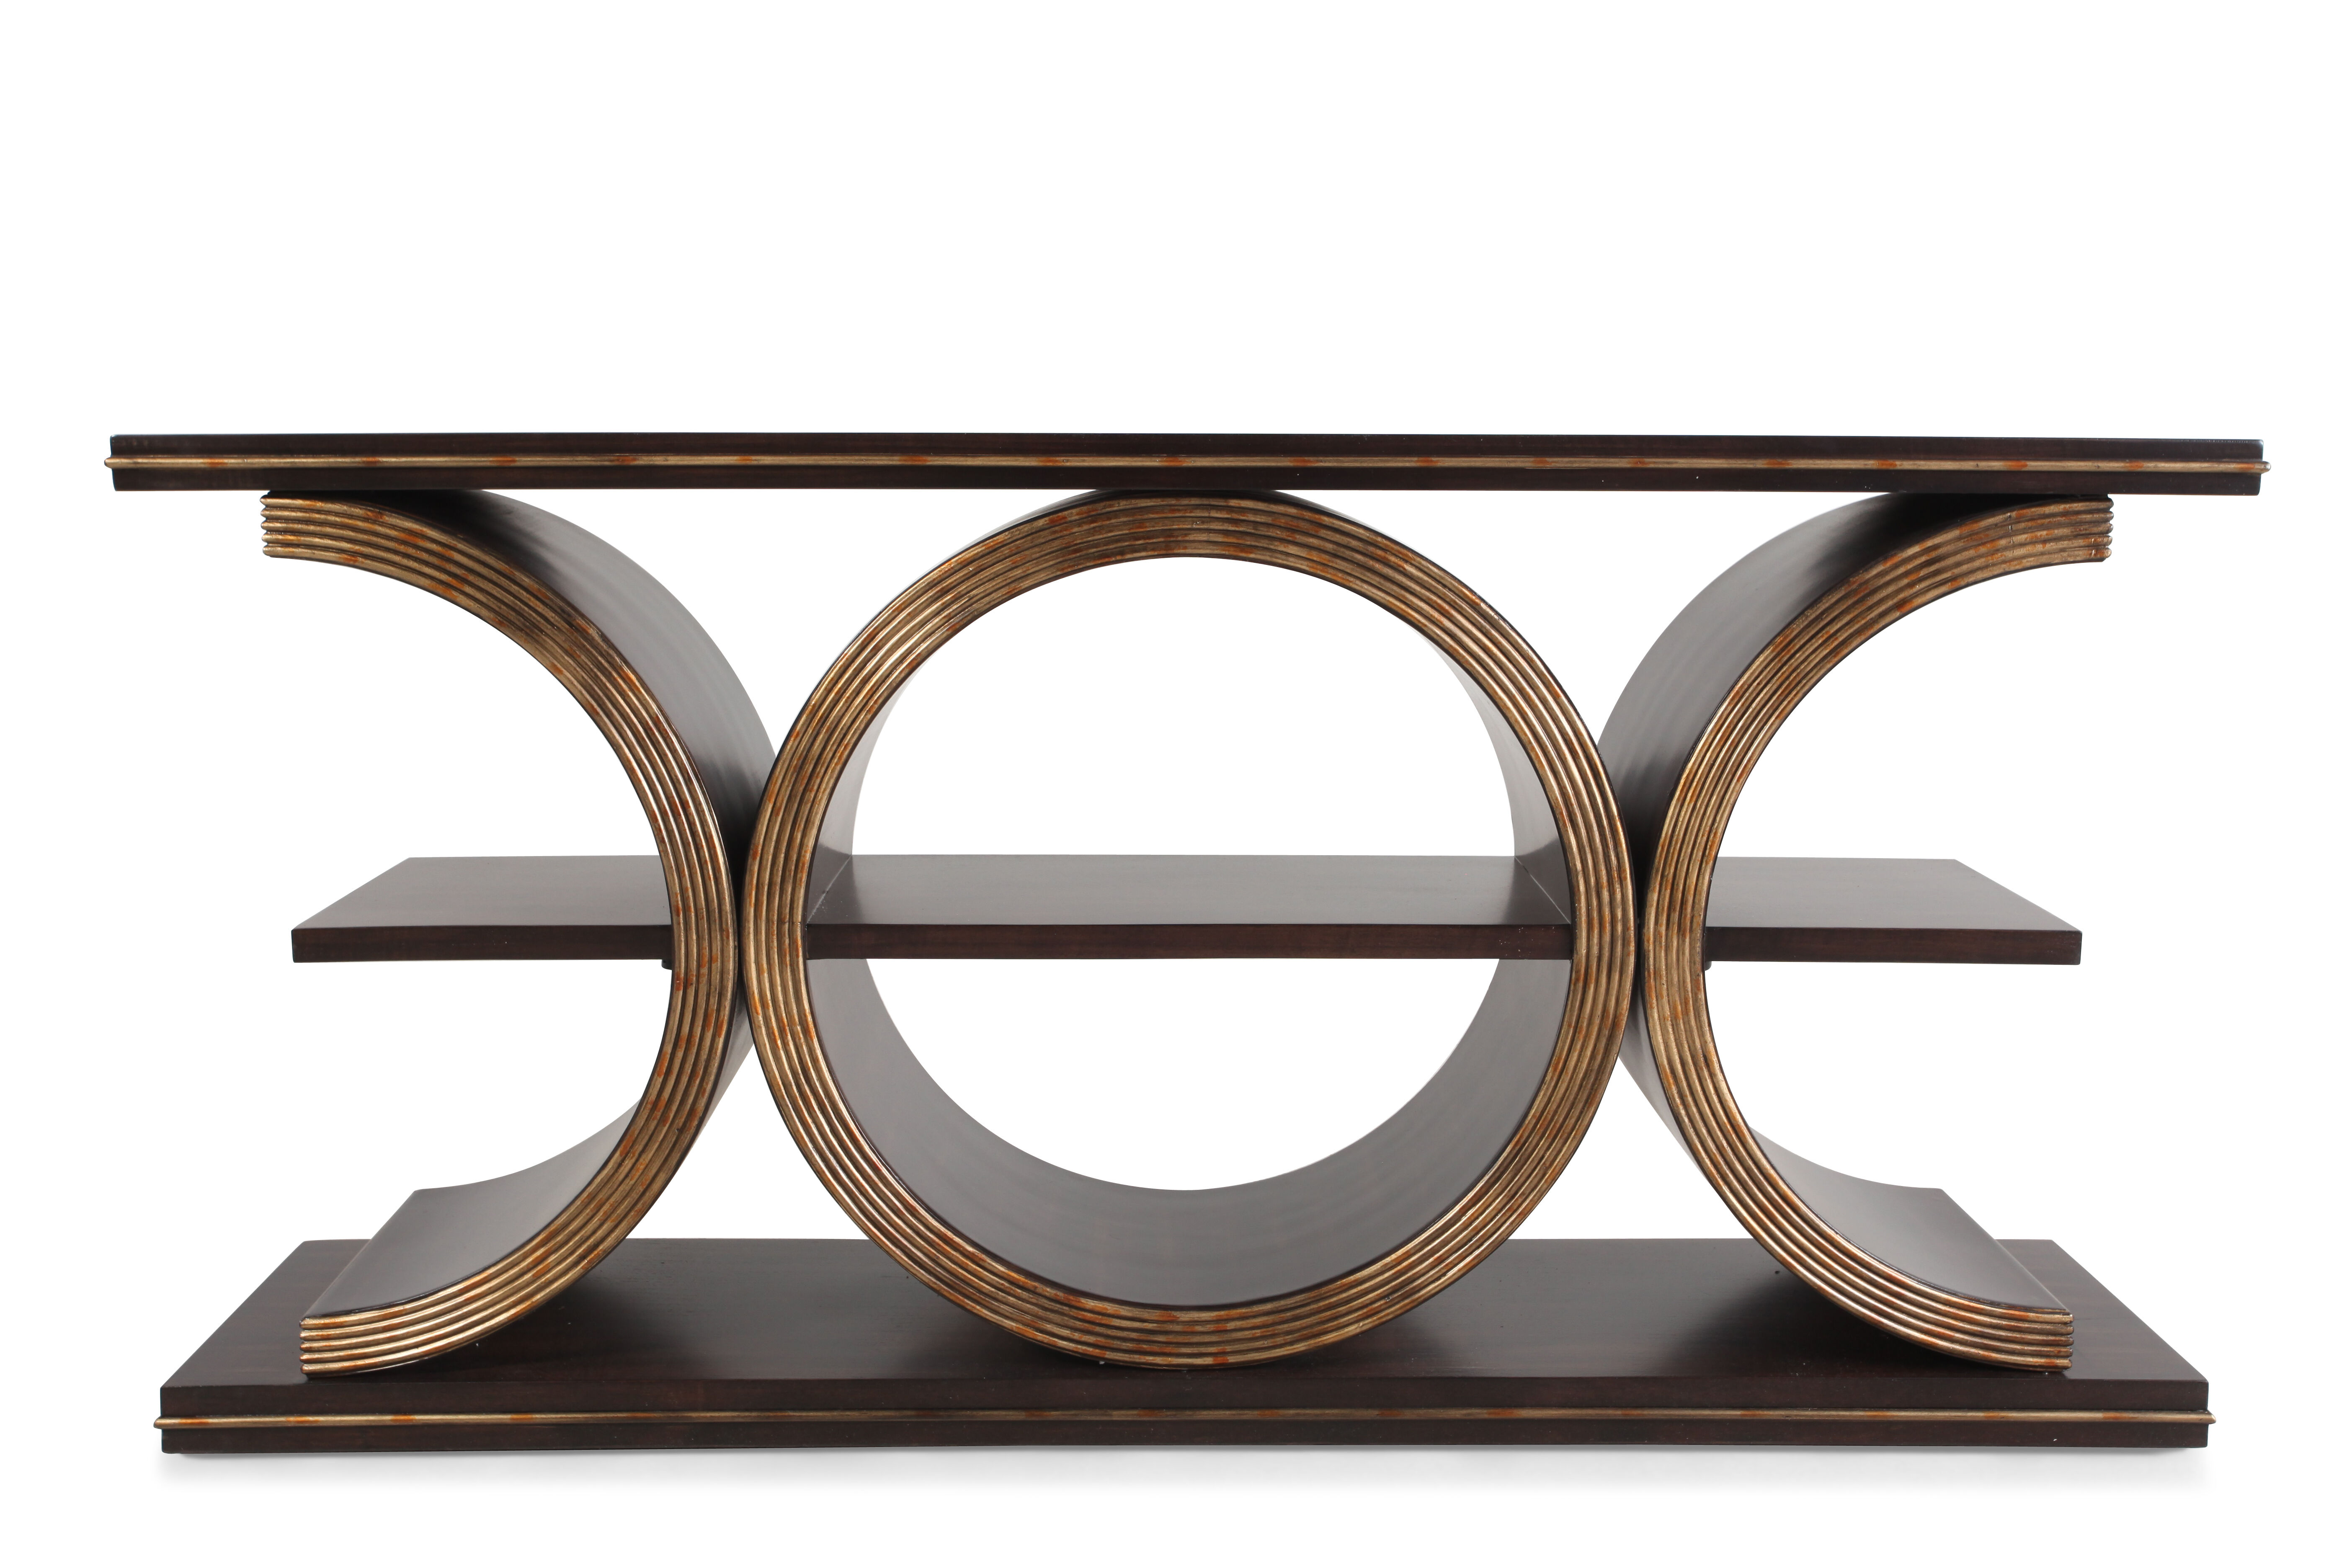 Images Geometric Body Transitional Console Table In Brown Geometric Body  Transitional Console Table In Brown